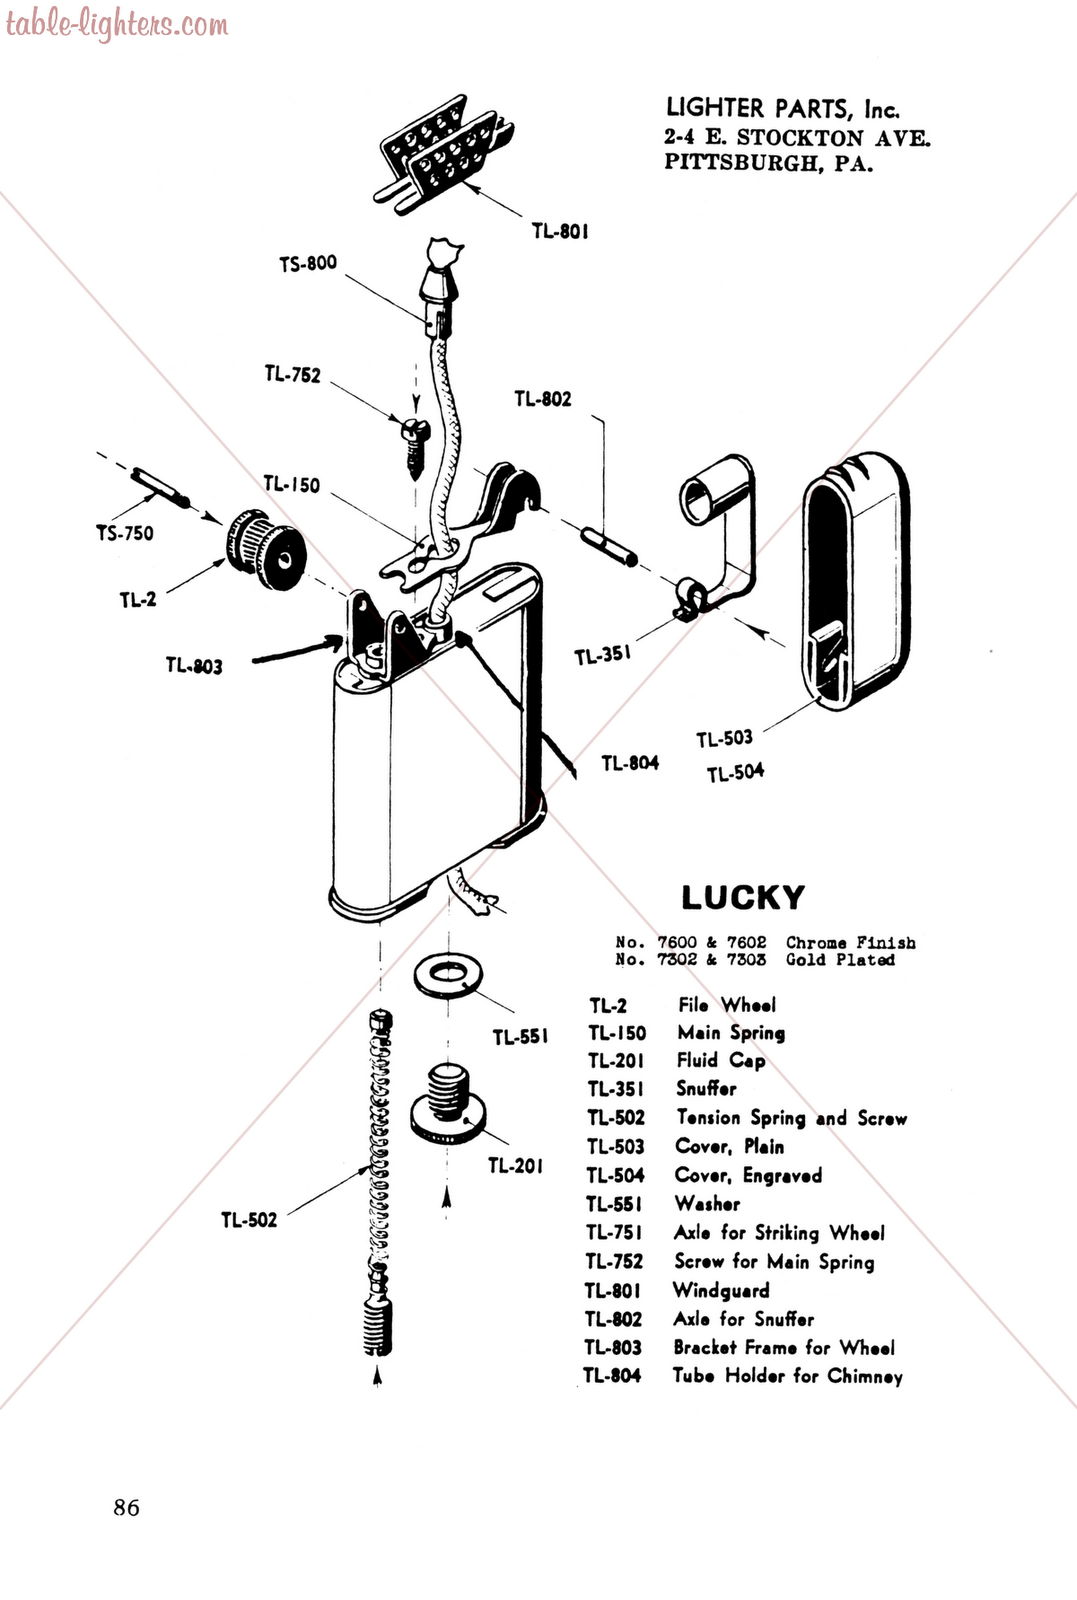 Table Lighters Collectors Guide Lighter Repair Manual For All Cigarette